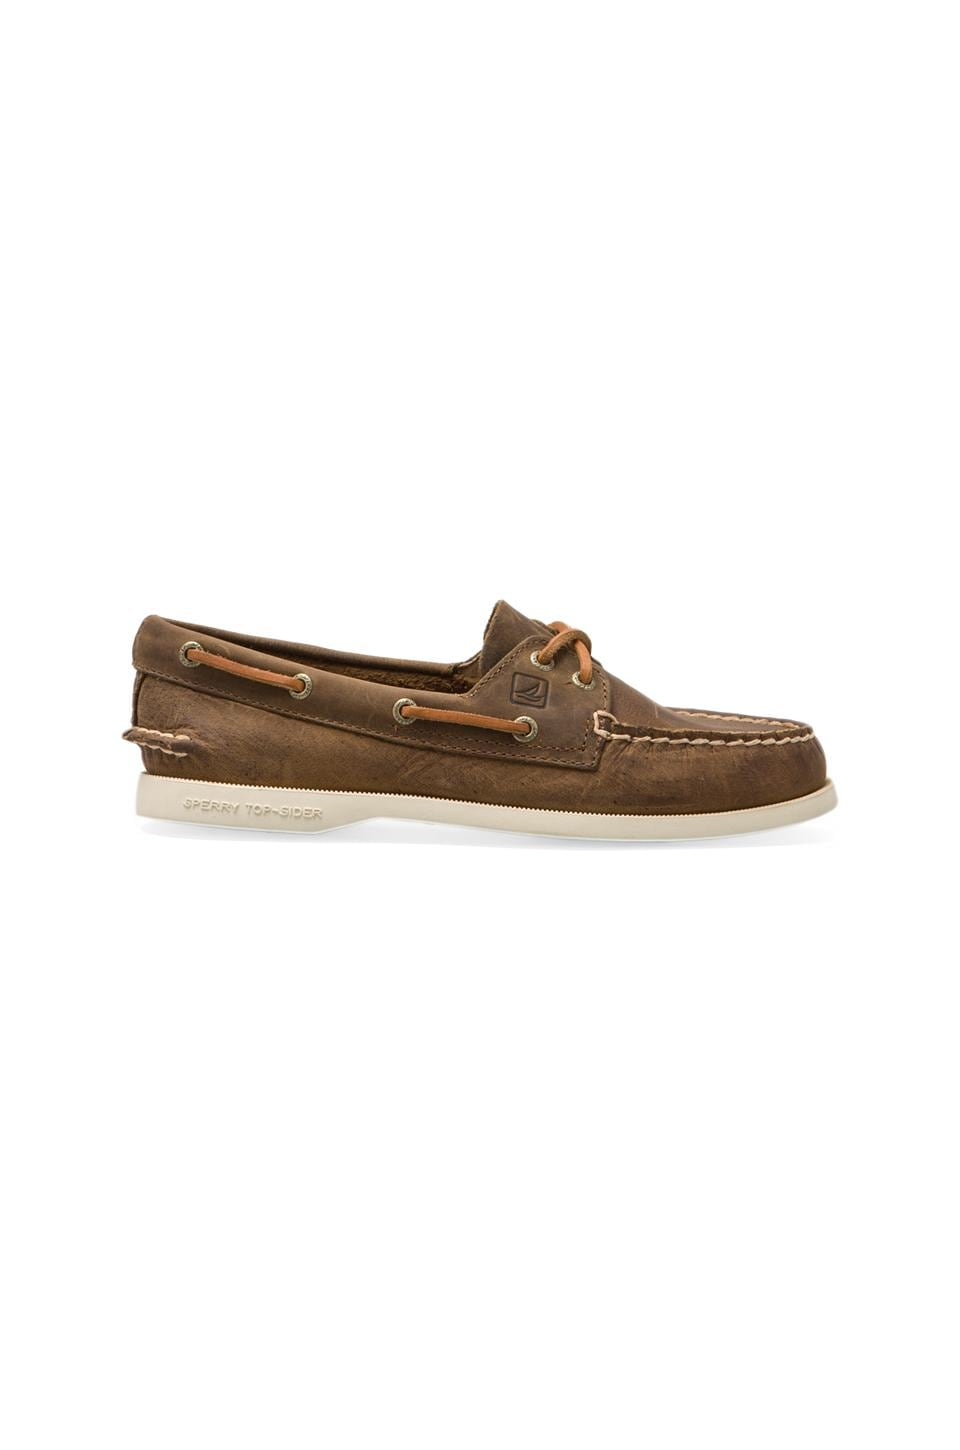 Sperry Top-Sider A/O 2-Eye in Brown